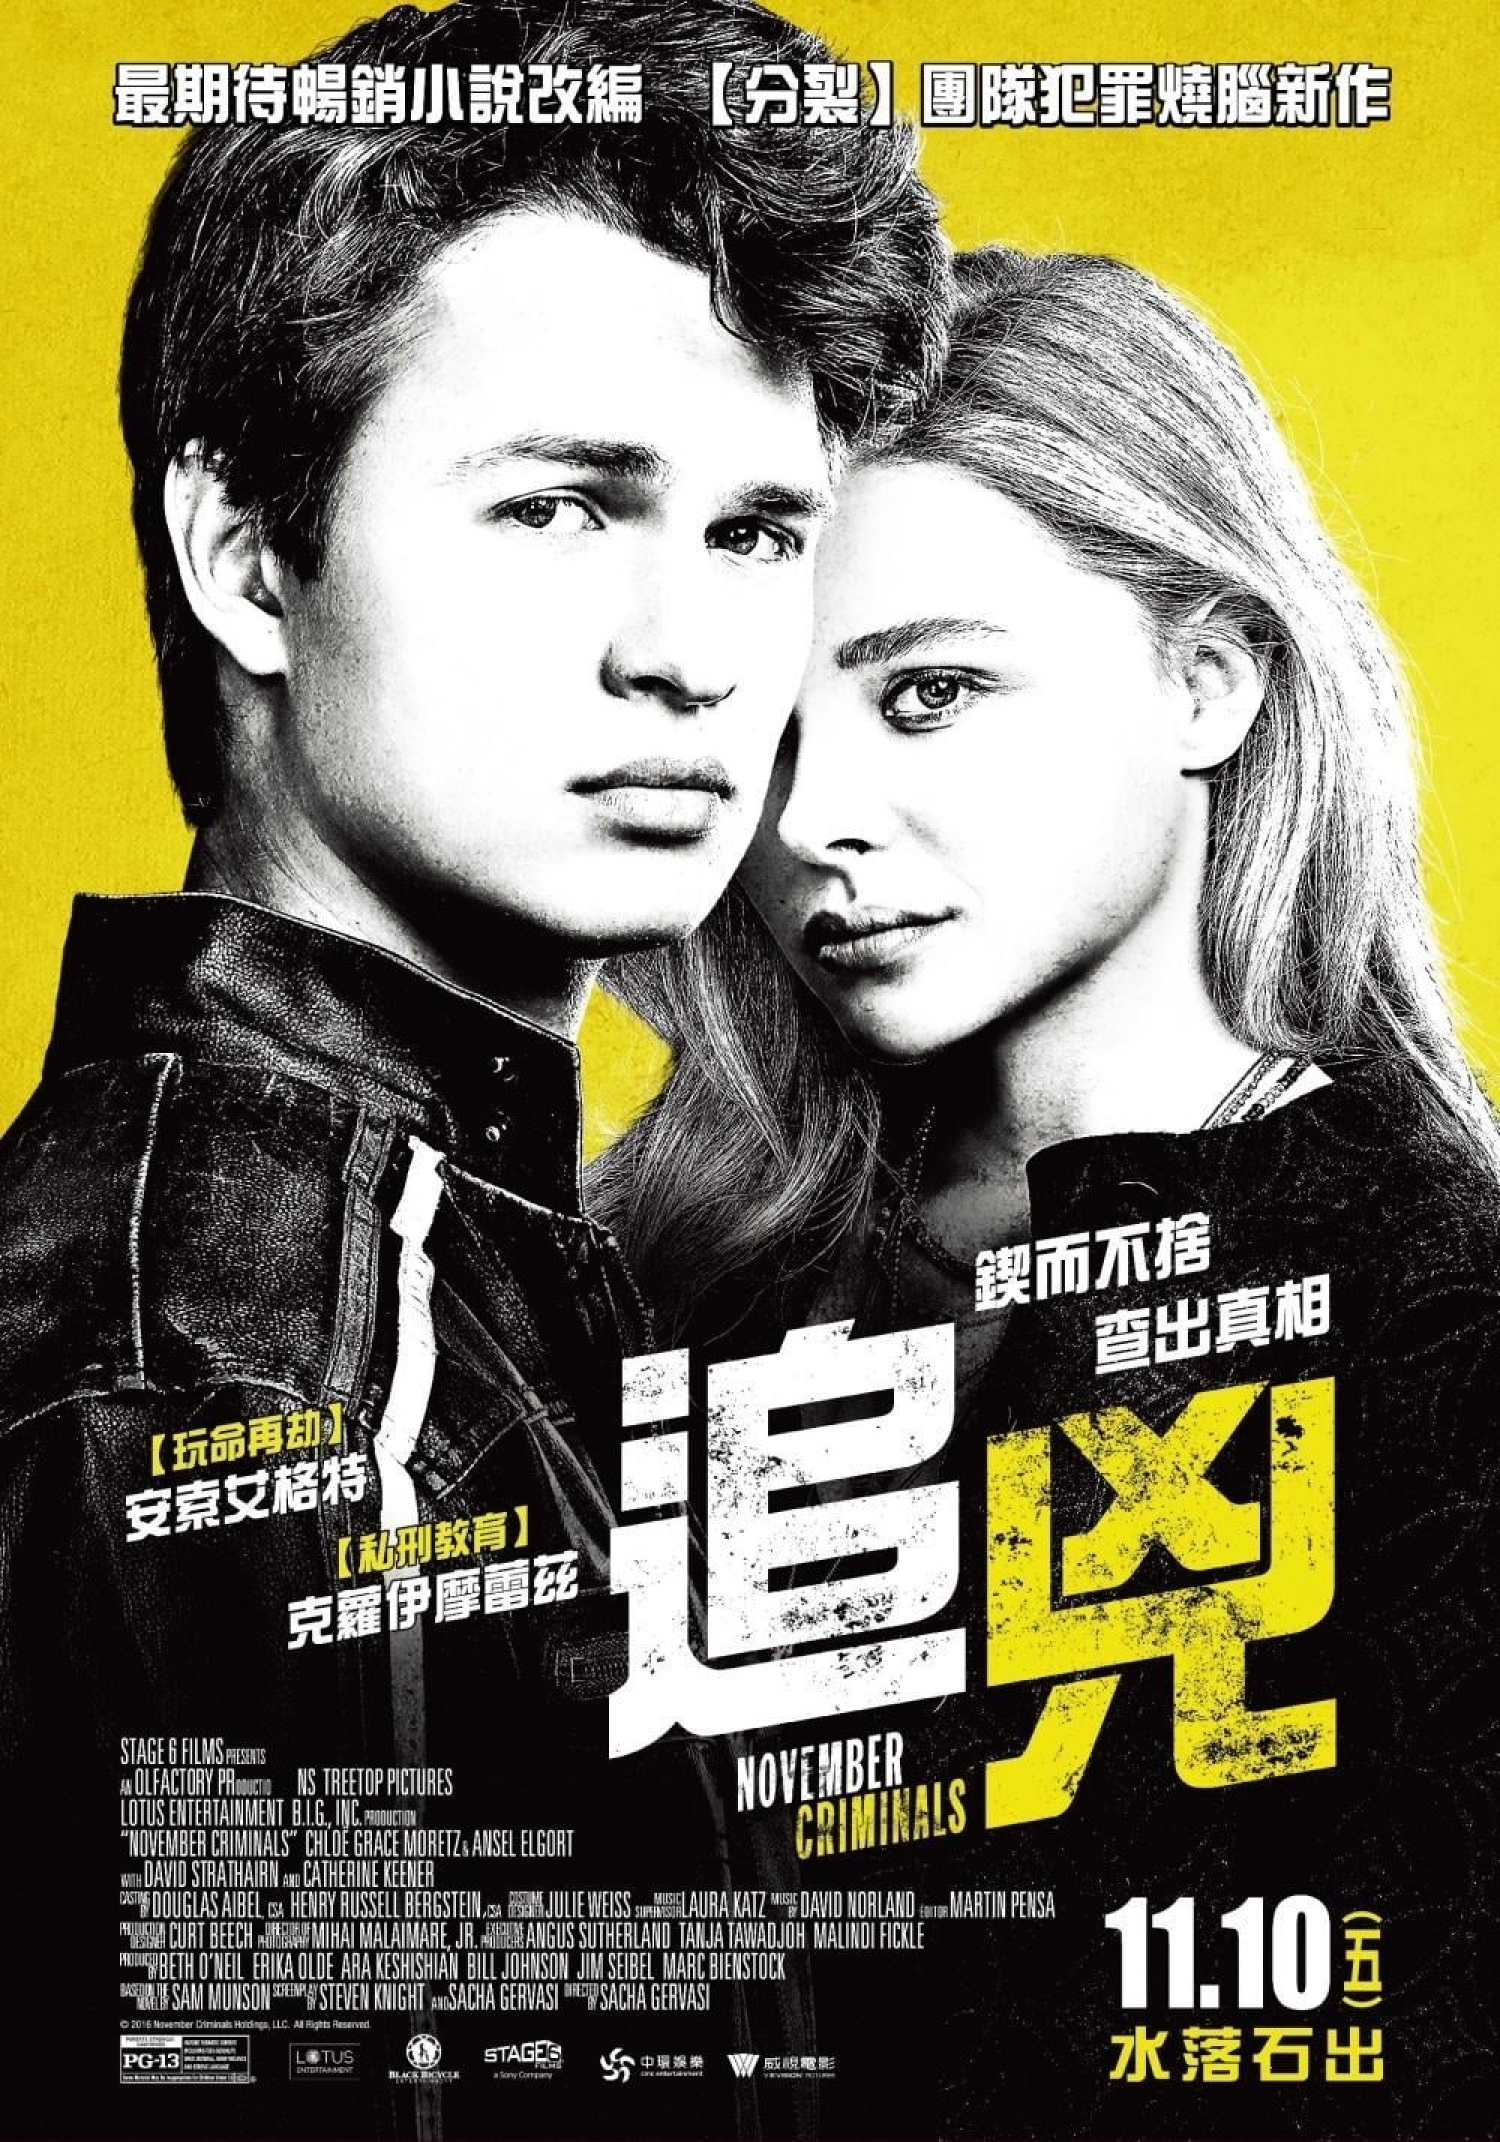 November Criminals - Movie info and showtimes in Trinidad ...